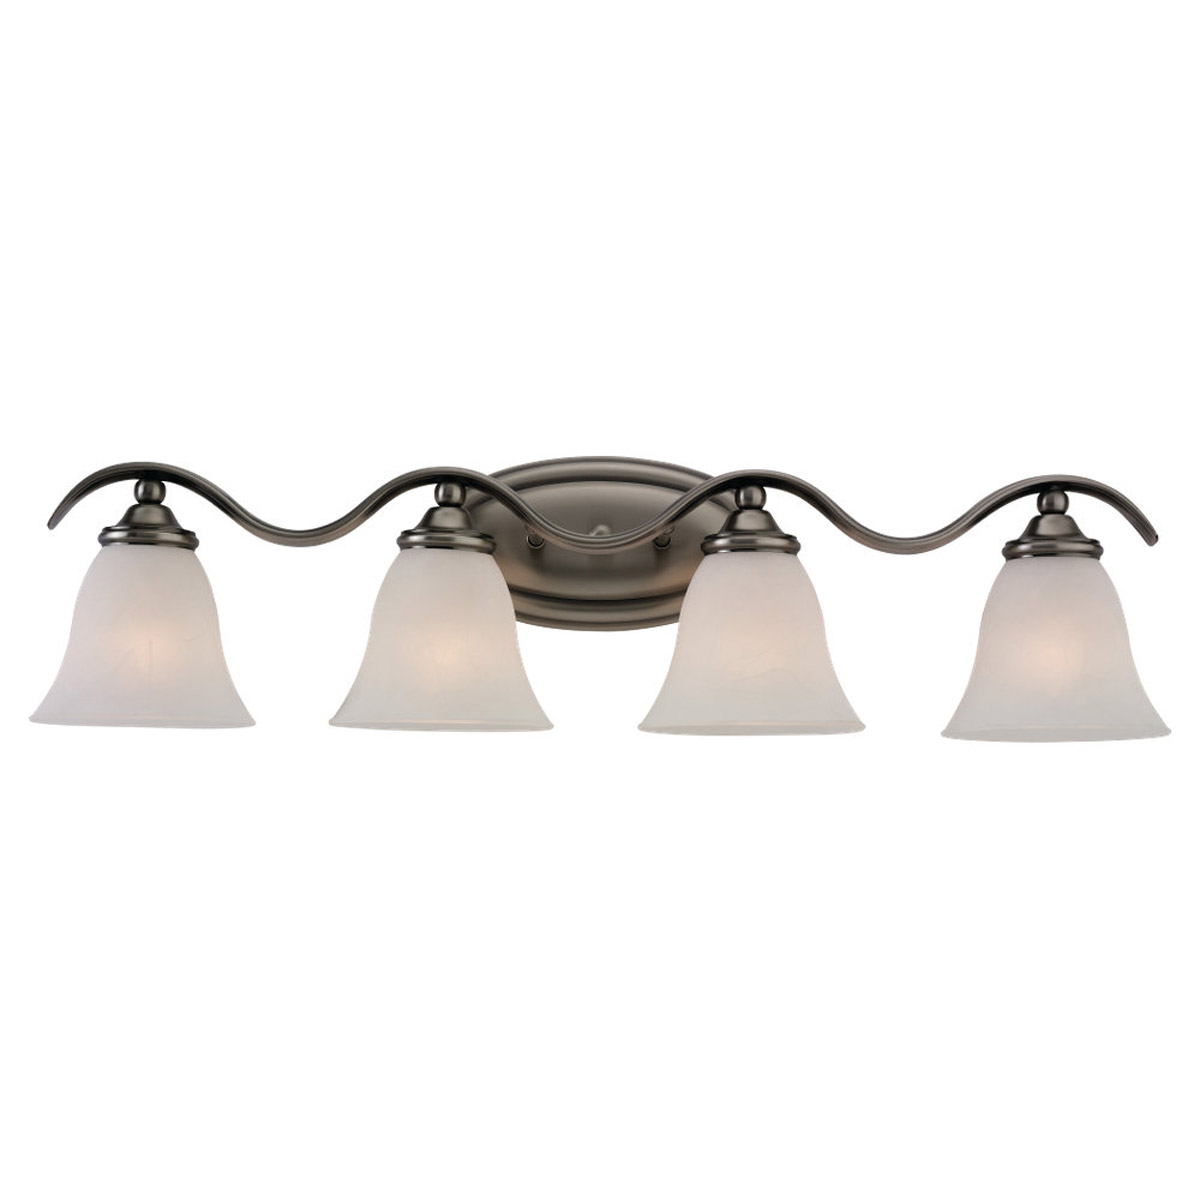 Sea Gull Lighting Rialto 4 Light Bath Vanity in Antique Brushed Nickel 44362-965